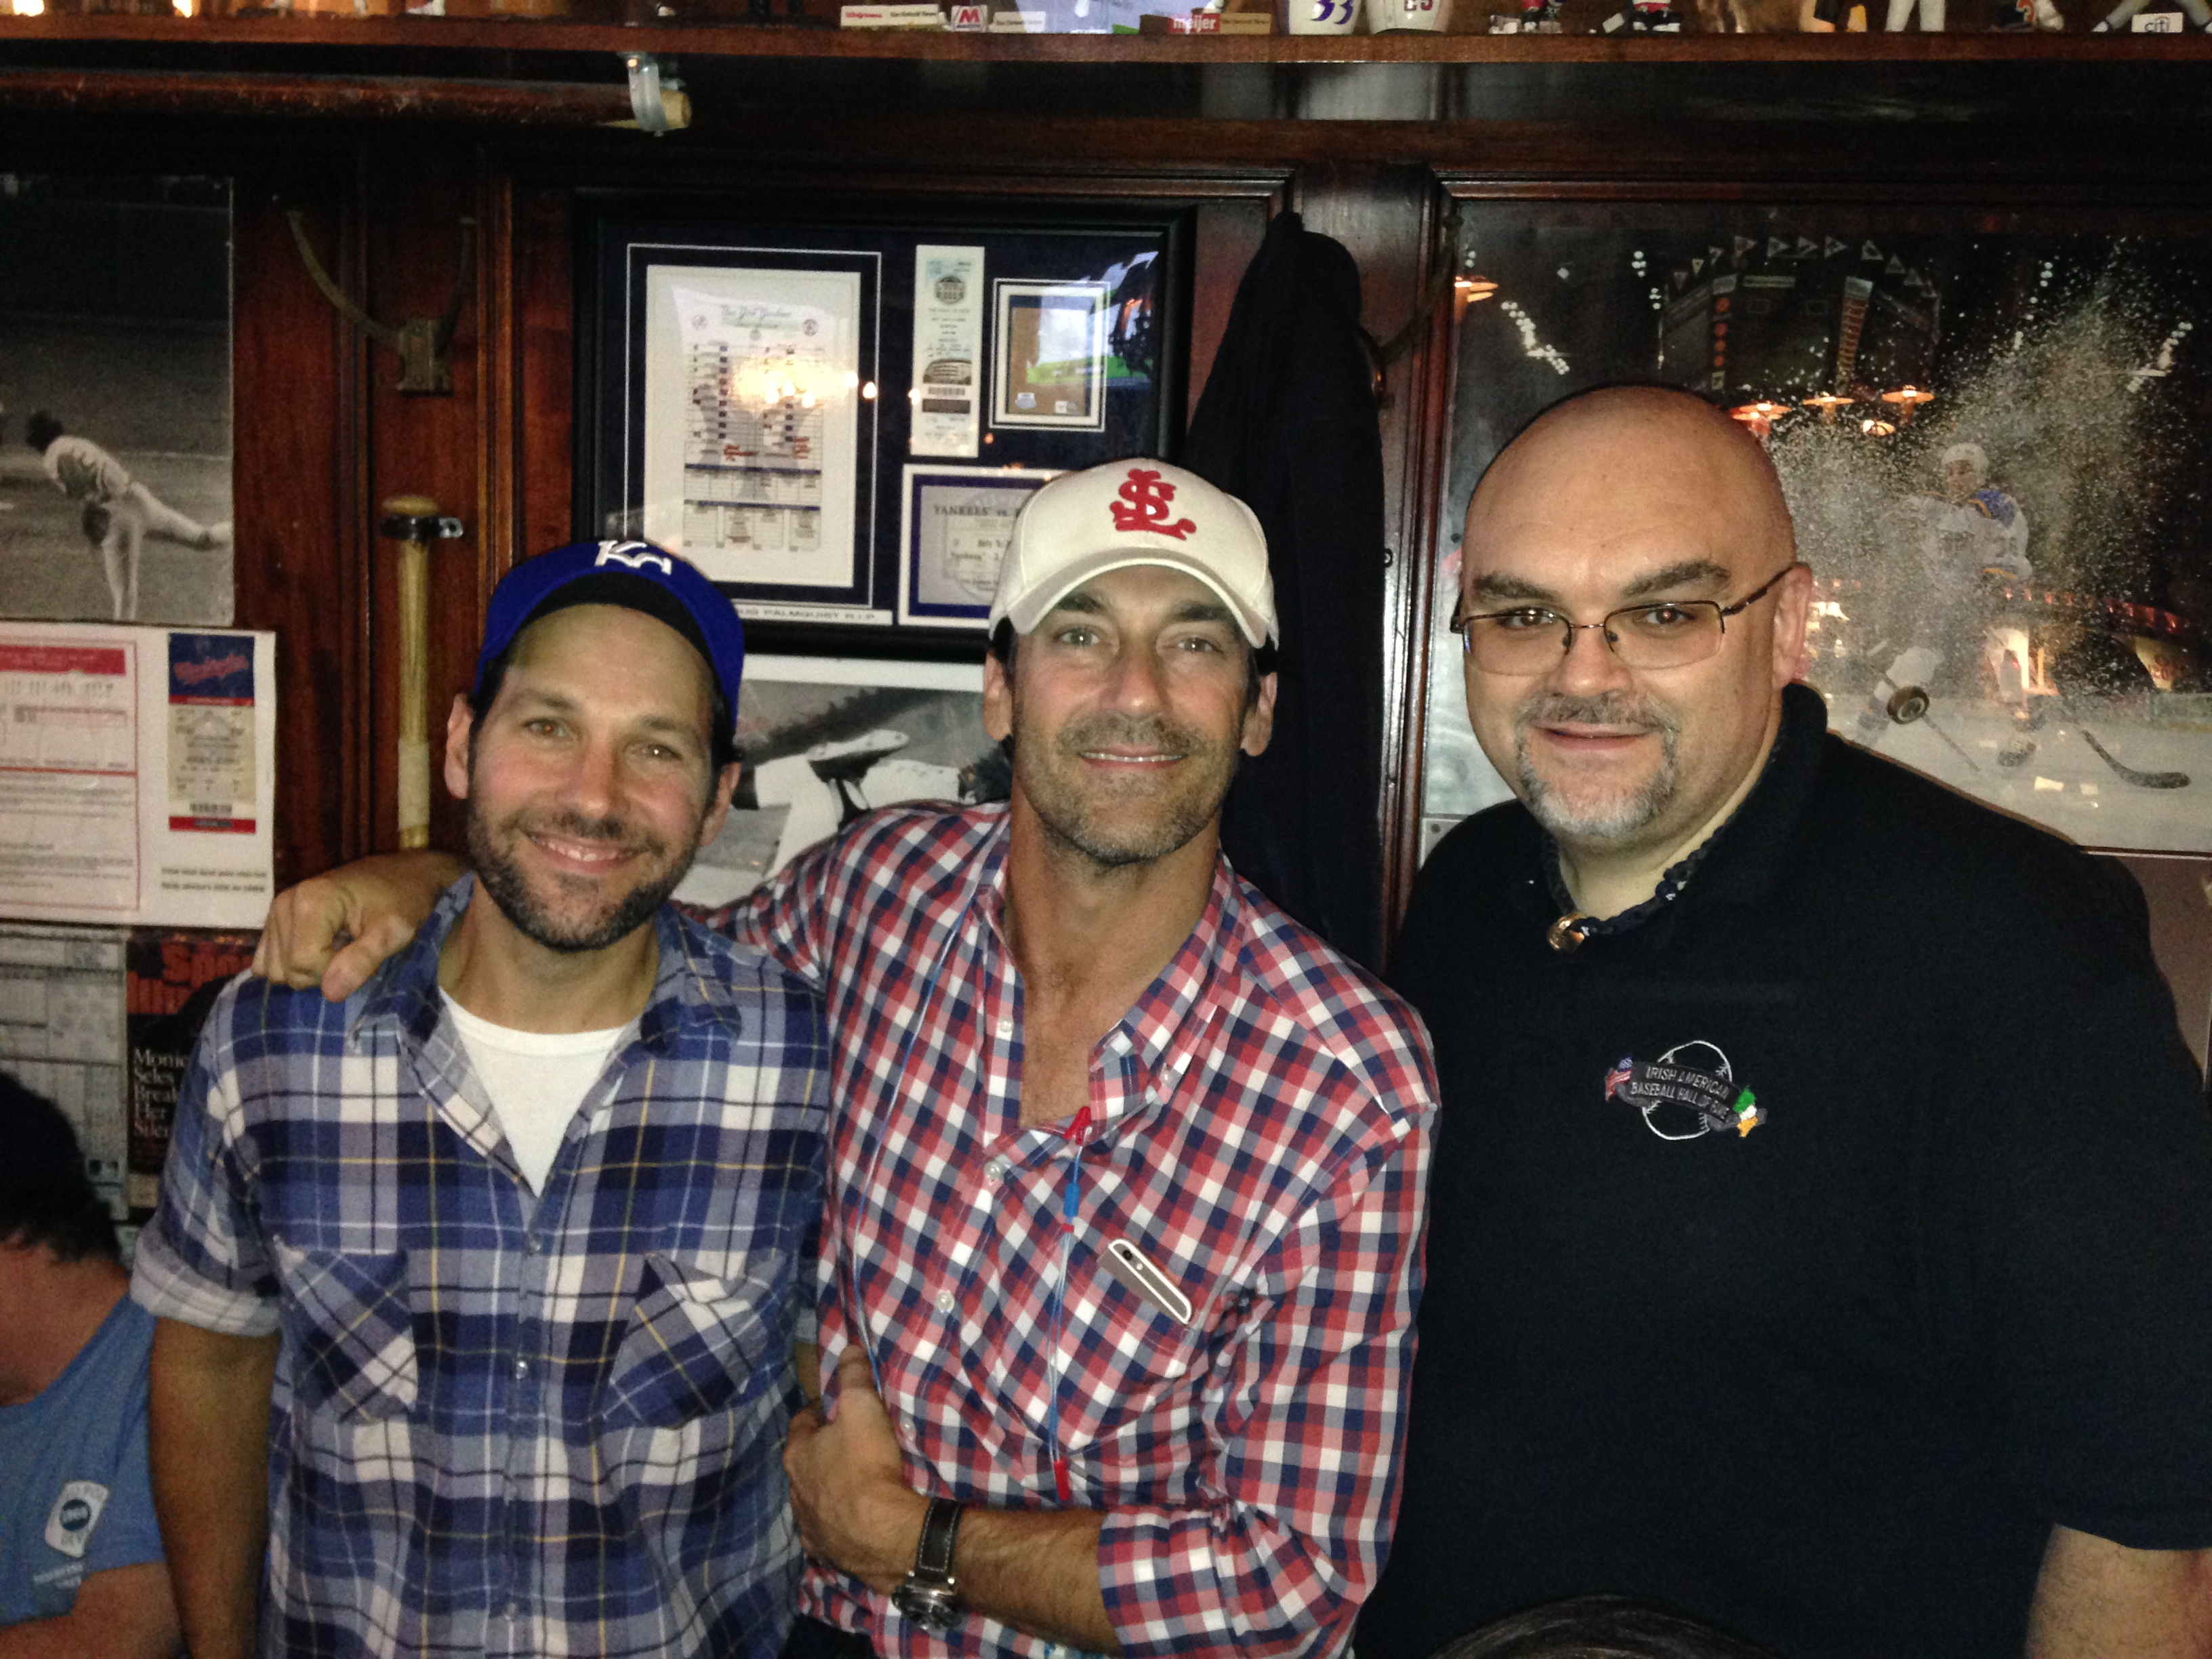 Paul Rudd and Jon Hamm at Foley's